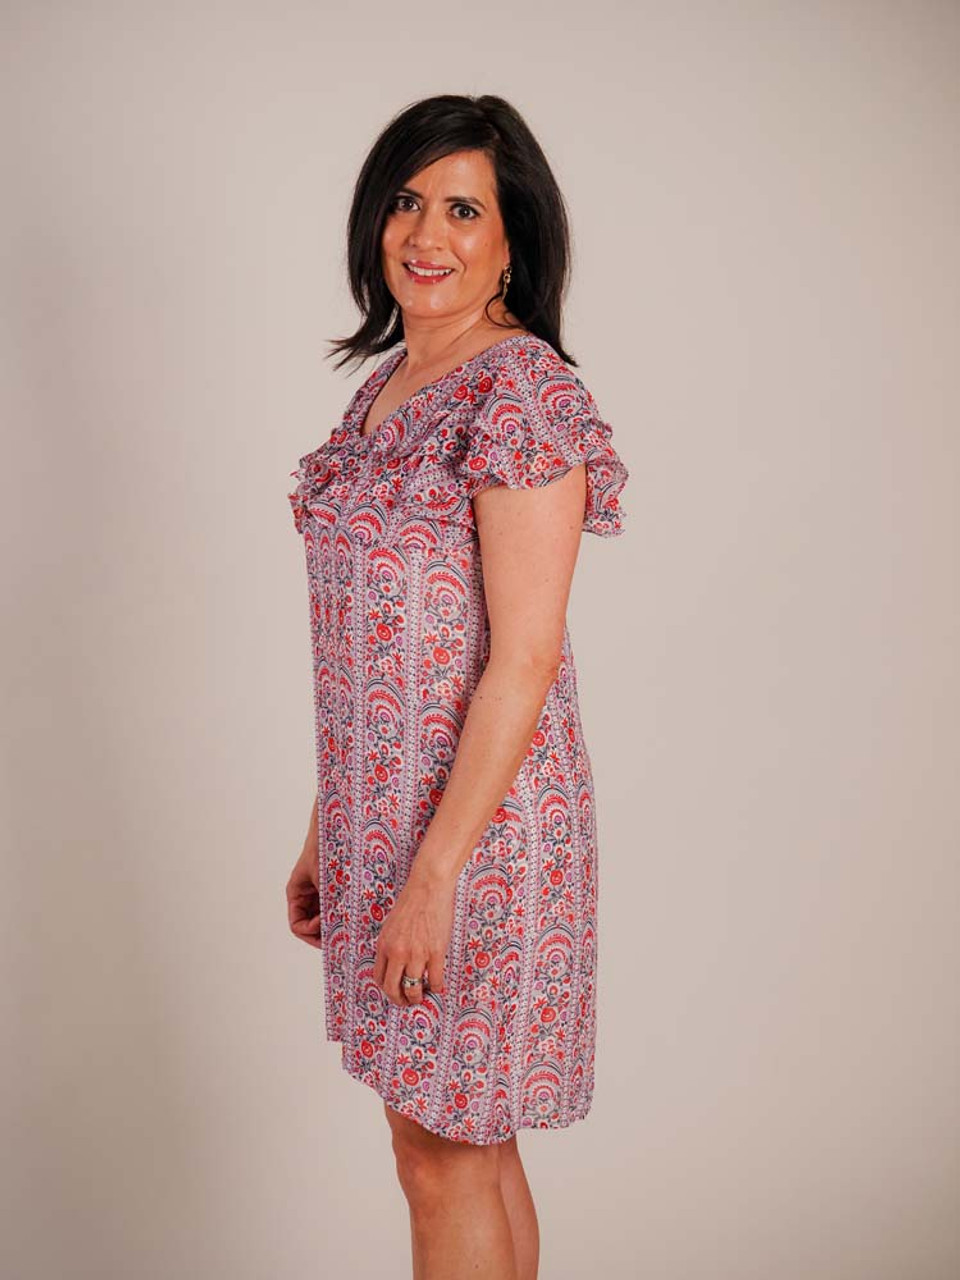 Midi dress with ruffled layers at top and short butterfly sleeves. Red, navy, and purple floral vertical striped design on grey background. Body of dress is fully lined